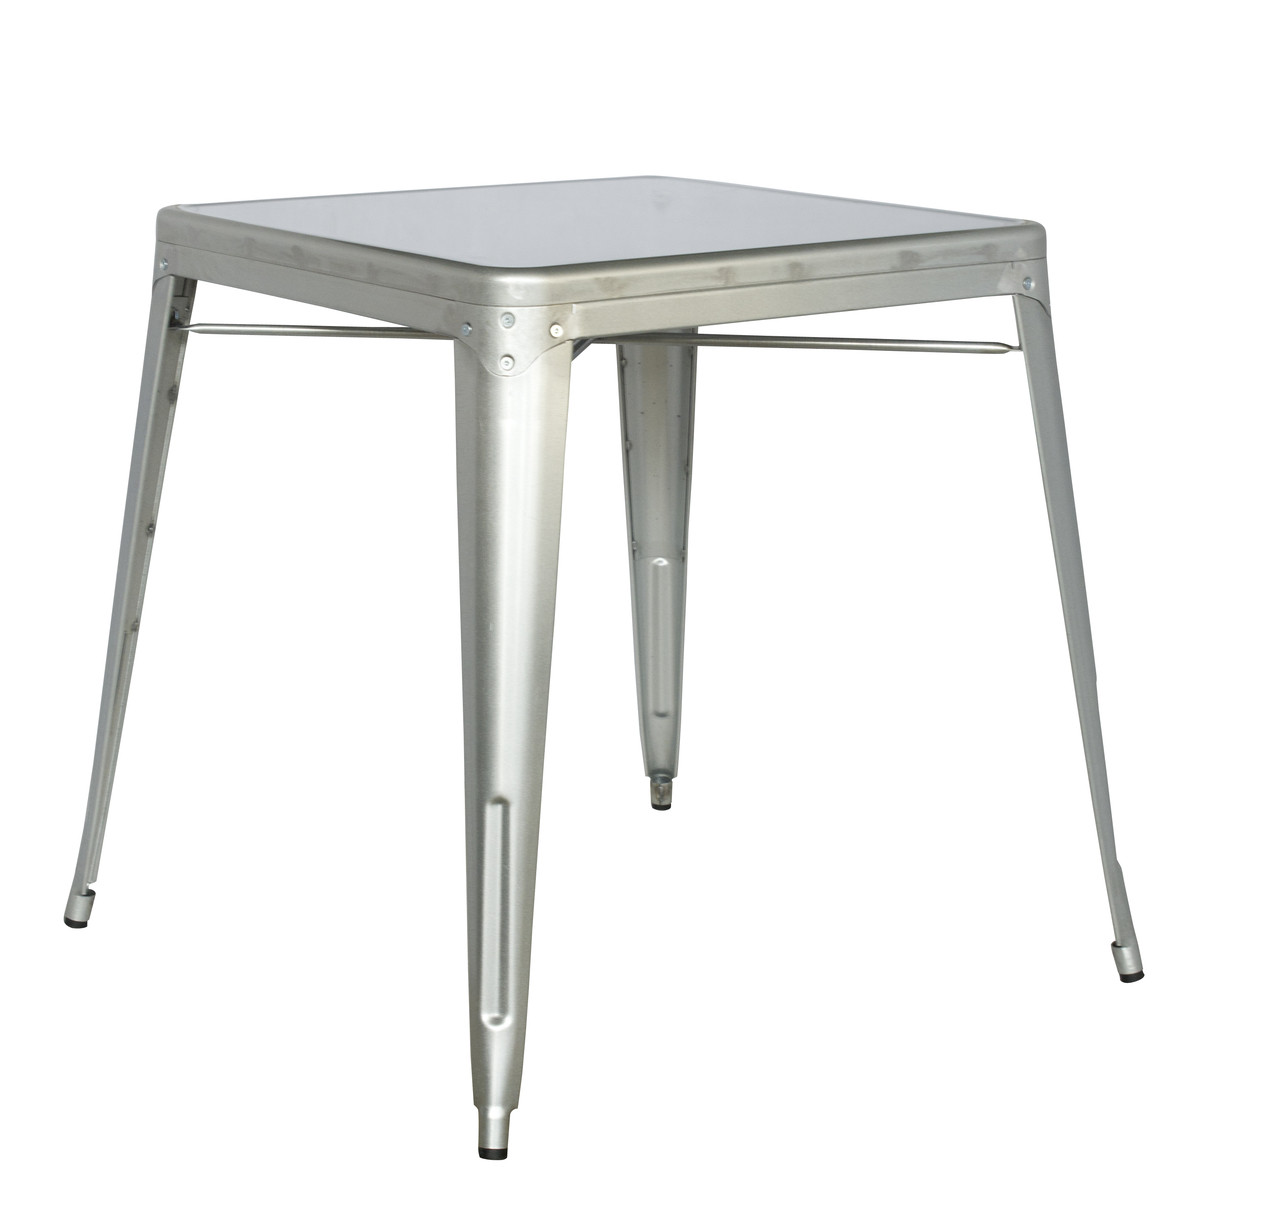 Galvanized Dining Table Outdoor Steel Table Seats And